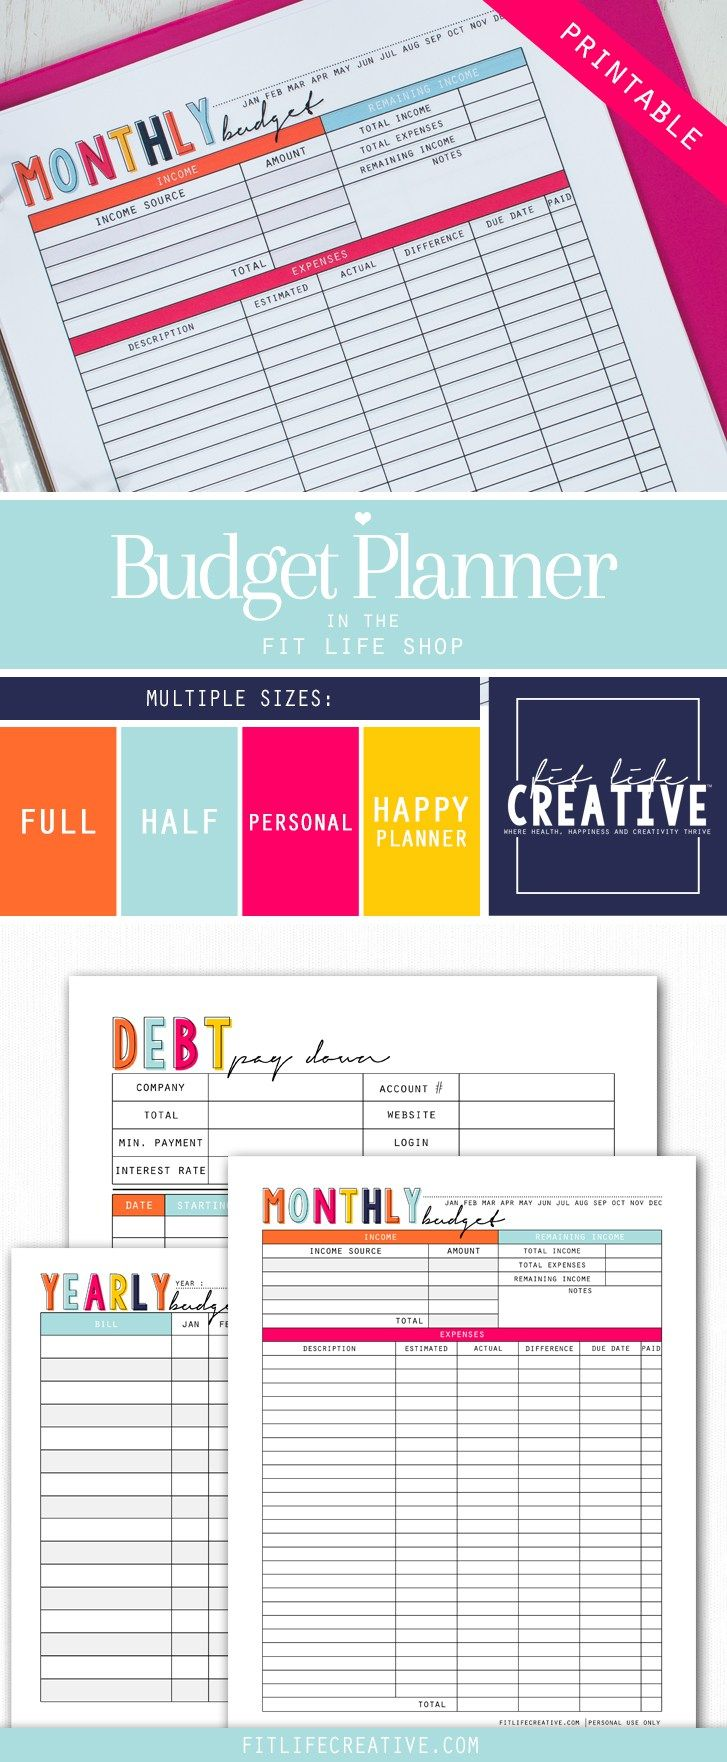 17 Best ideas about Budget Planner on Pinterest | Printable budget ...